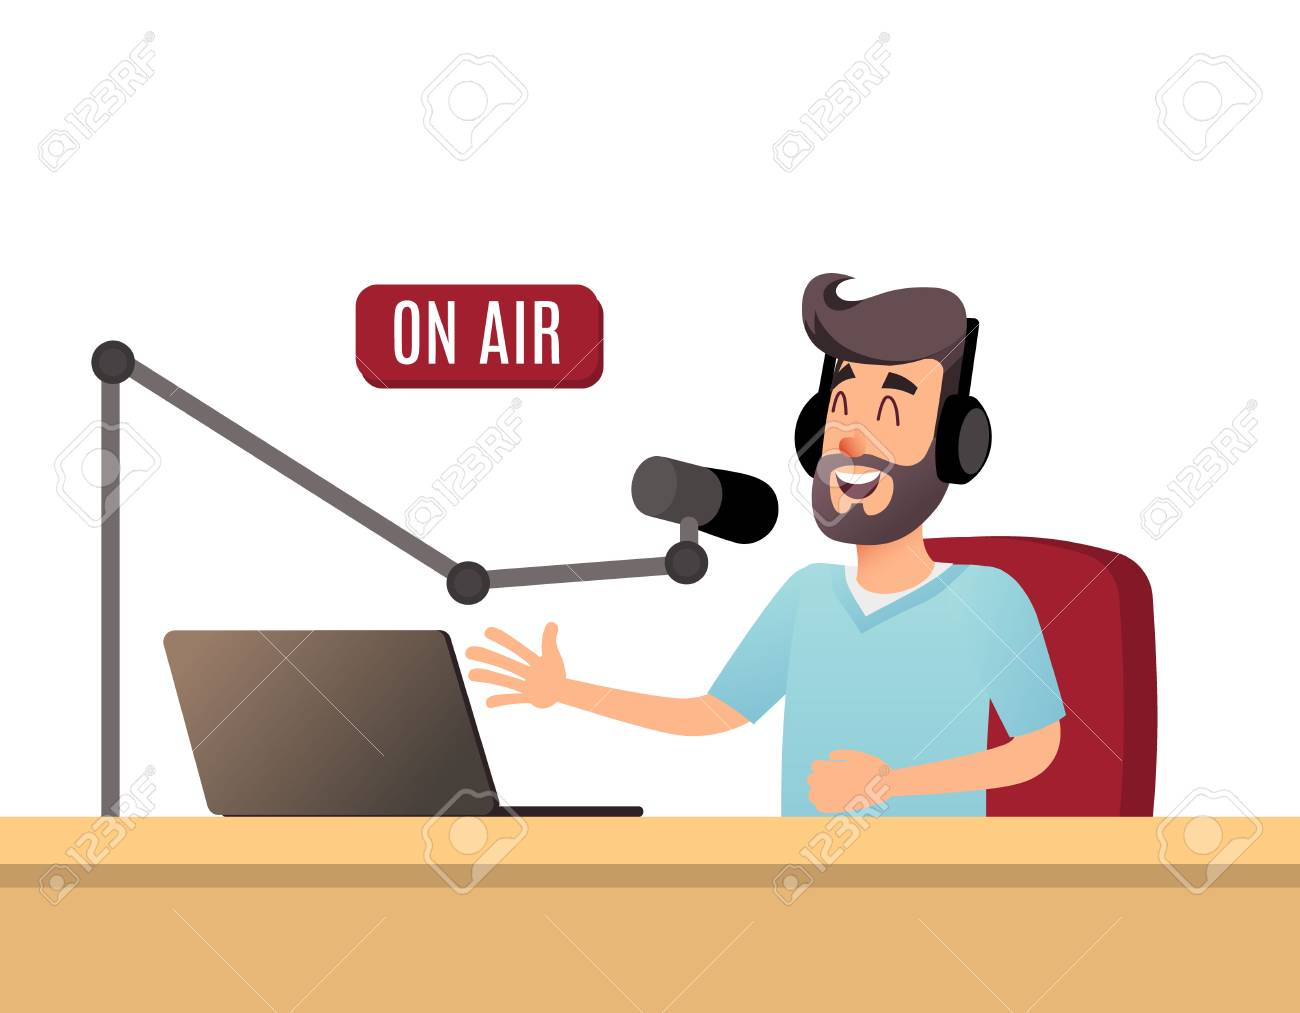 The radio presenter is talking on the air. A young radio DJ in headphones is working on a radio station. Broadcasts flat design illustration. - 94756457